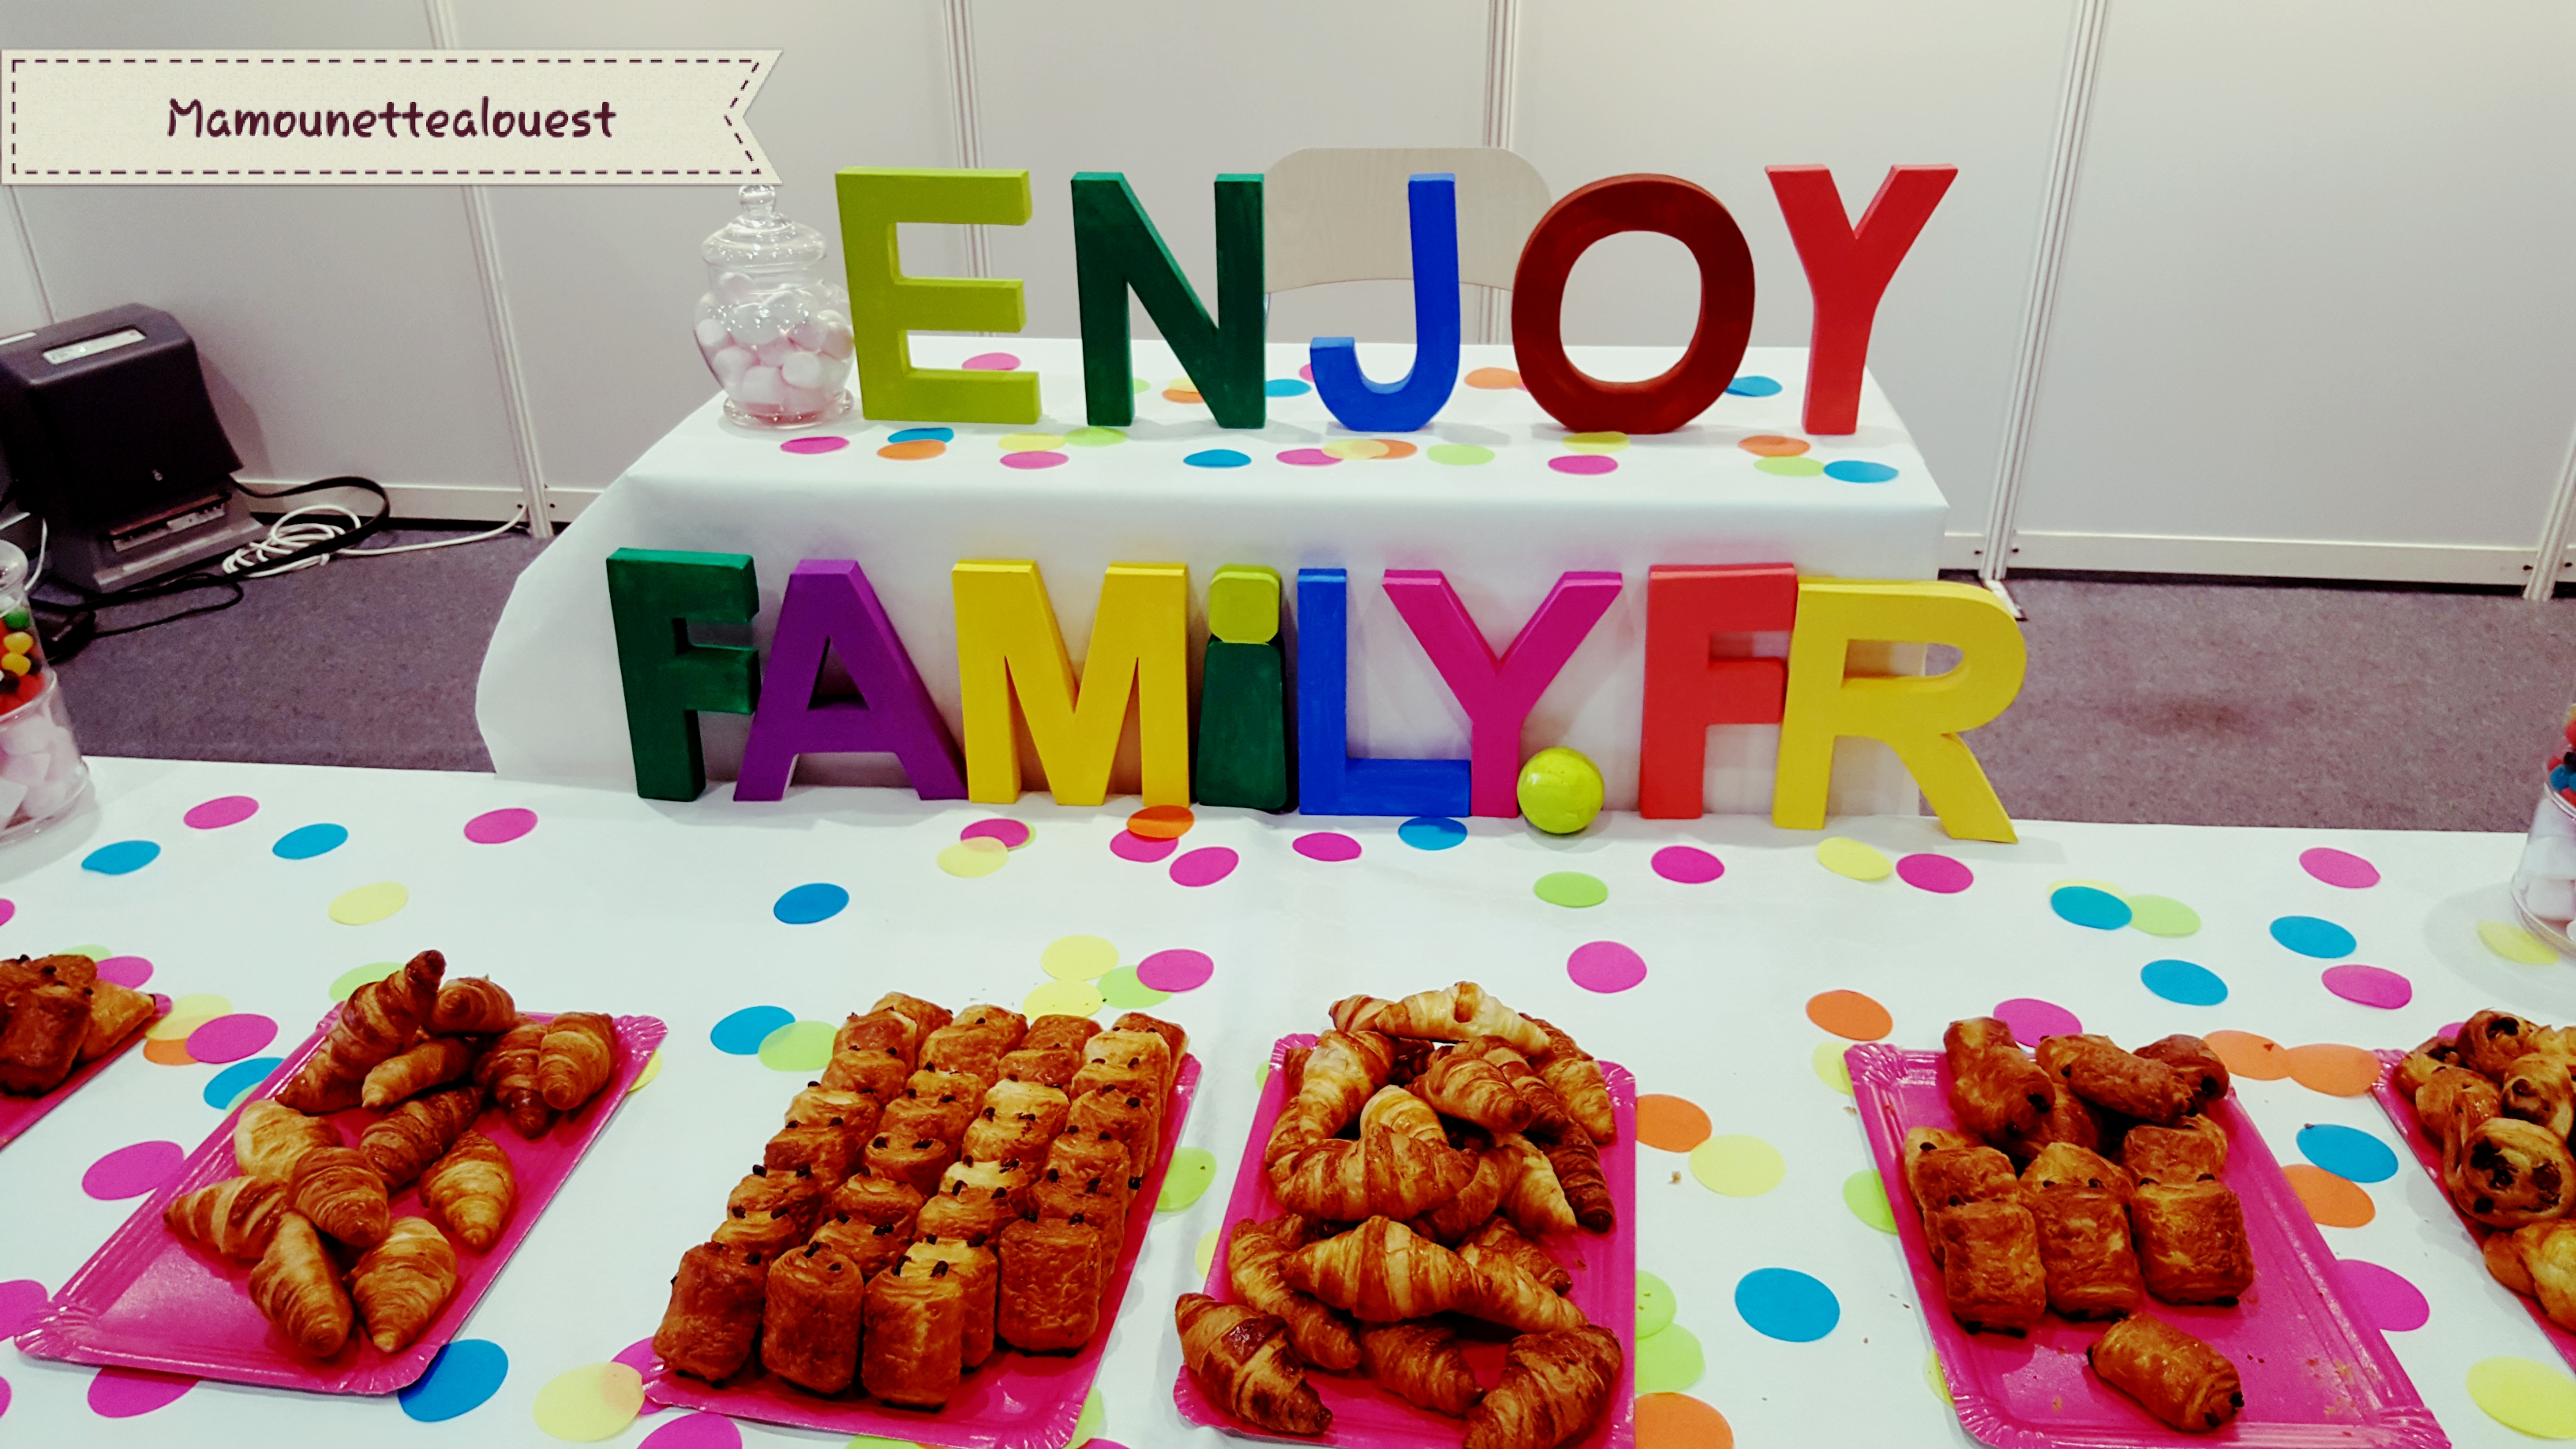 Enjoyfamily Salon Baby 2018 Lyon.jpg